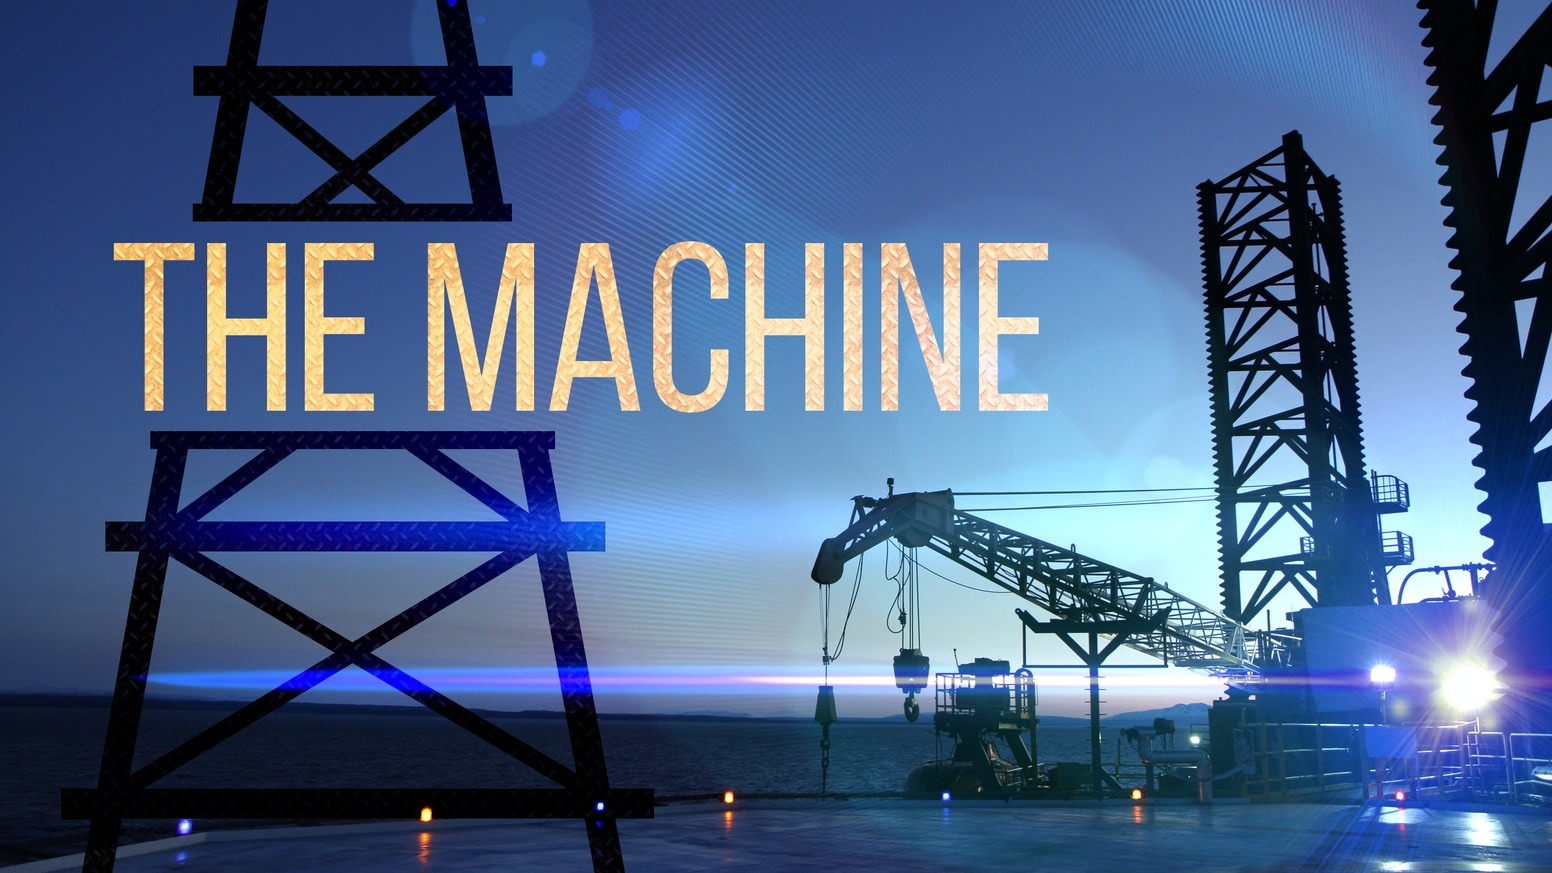 "The Machine is a brooding, ""fly on the wall"" style film project about an oil & gas rig off the coast of Alaska."